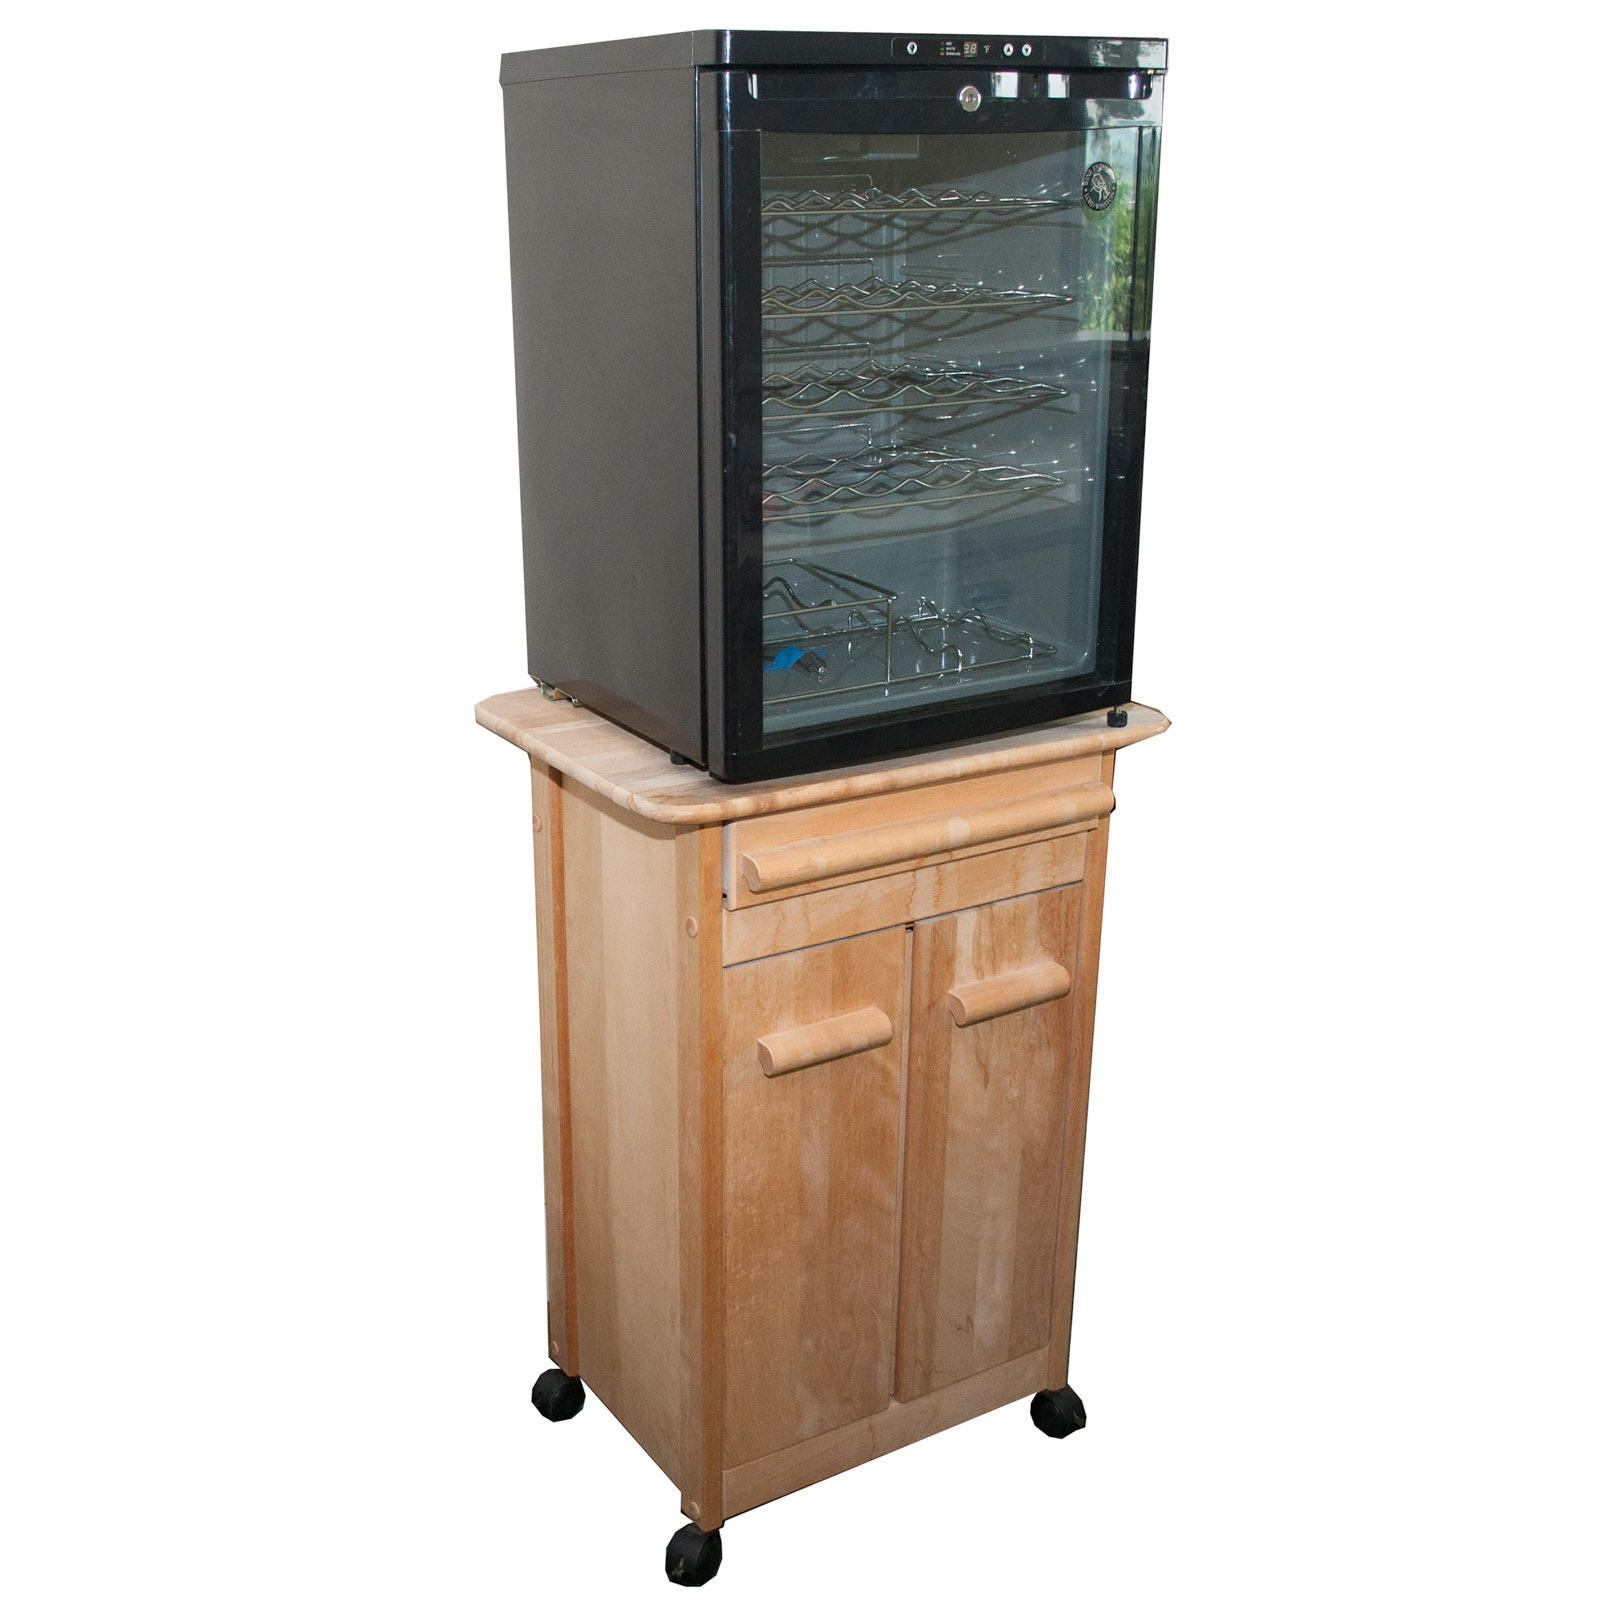 Lord Winston Wine Enthusiast Cooler and Stand